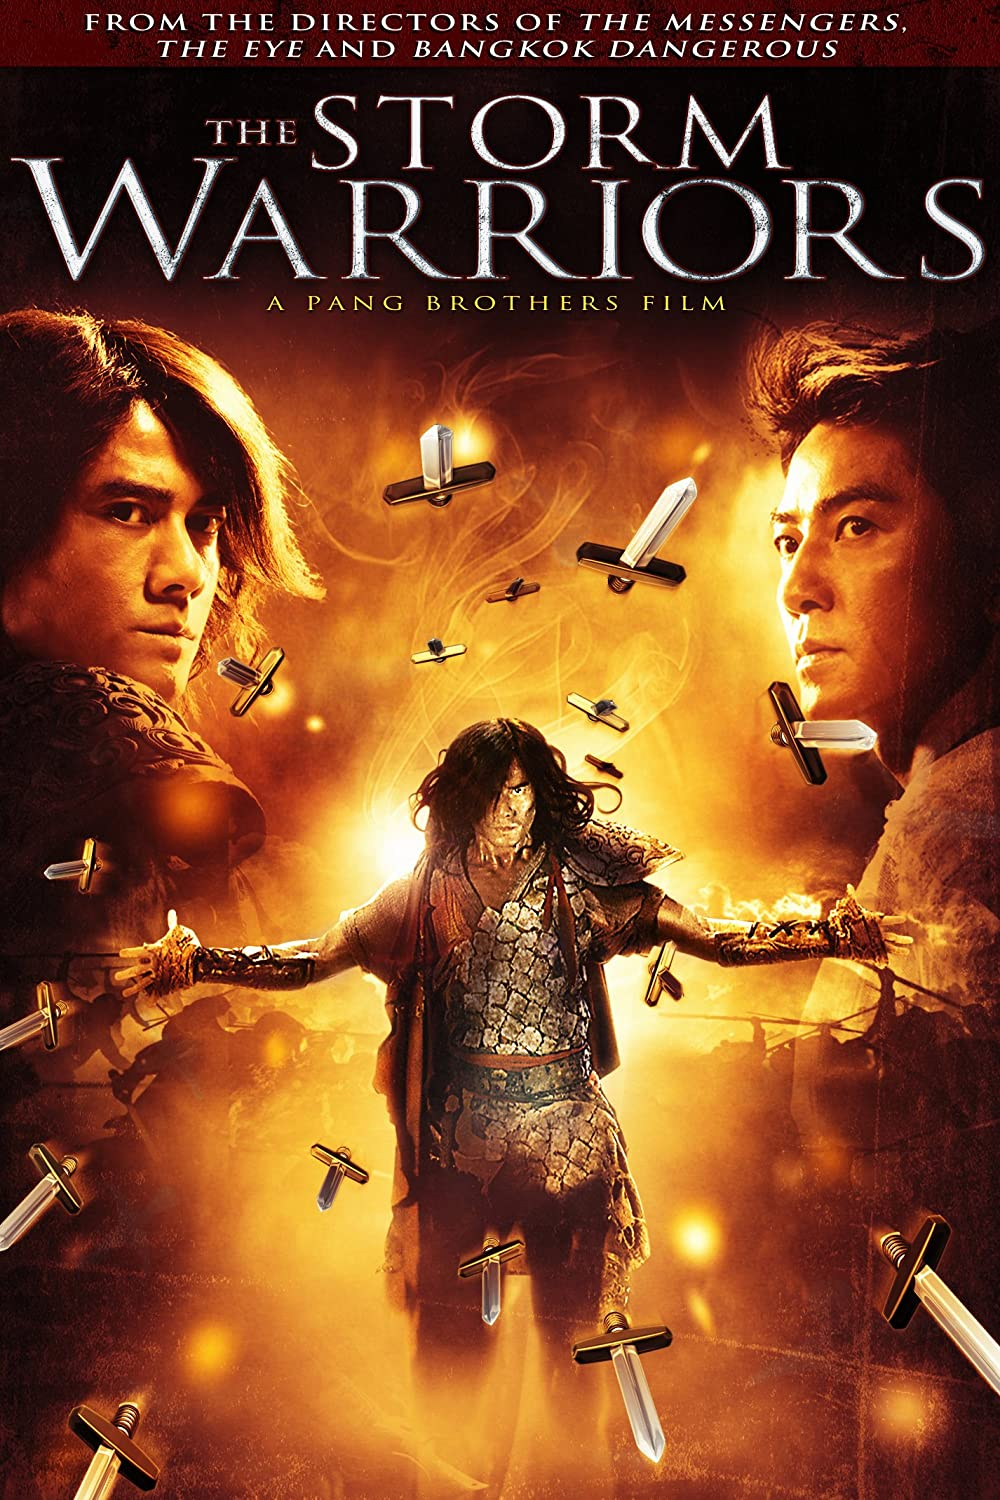 The Storm Warriors 2009 Dual Audio  480p | 720p BluRay [Hindi ORG + Chinese] x264 AAC 400MB | 1110MB Download